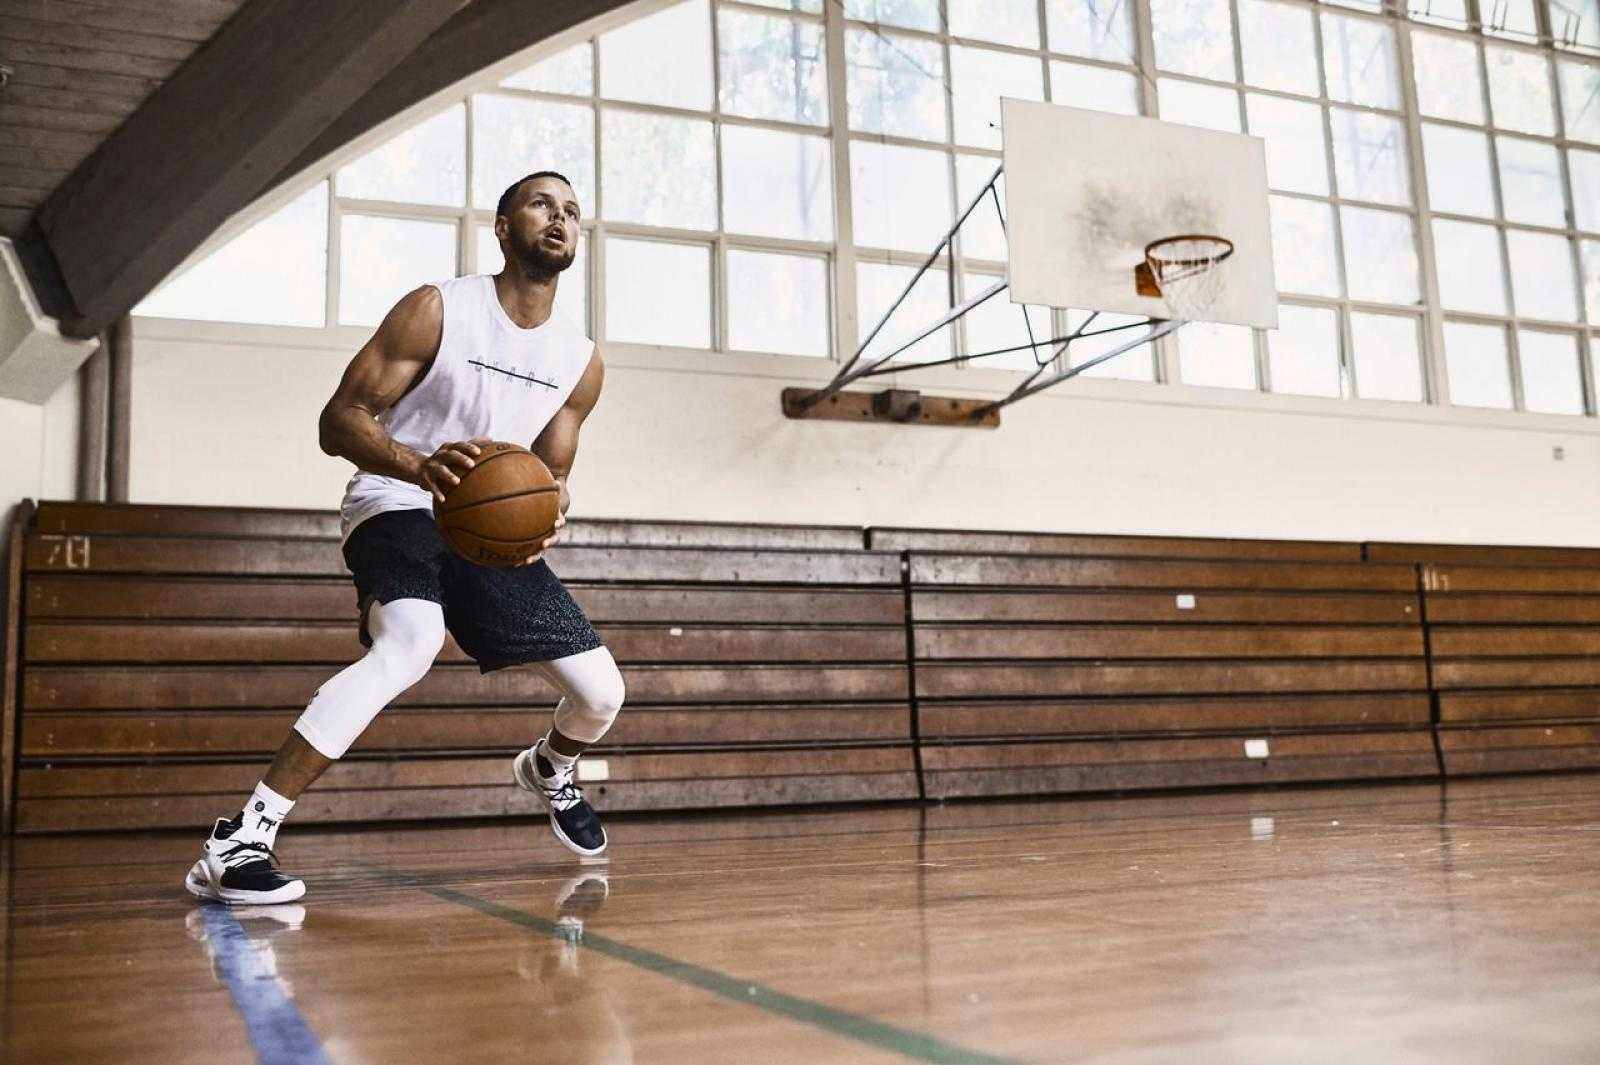 a5314608cf7 Image Credit  Under Armour. The Under Armour Curry 6 Working on Excellence  ...